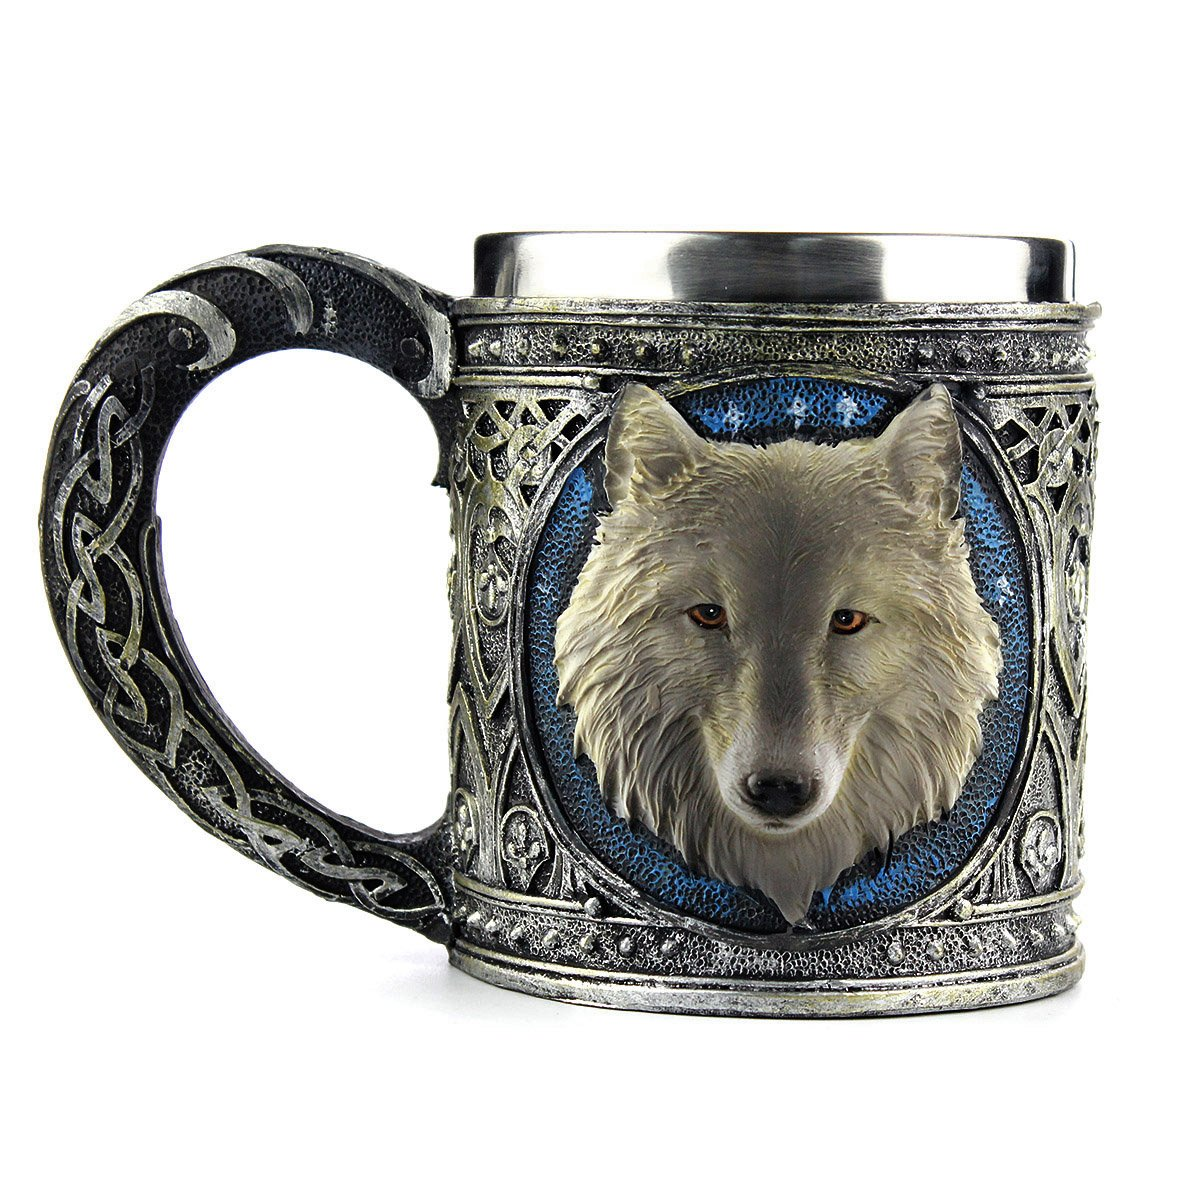 Stainless Steel Wolf Goblet, EZESO Resin 3D Wolf Coffee Cup Stainless Steel Travel Tea Wine Beer Mugs(Goblet) EZESO.CO.LTD COMINHKPR122011